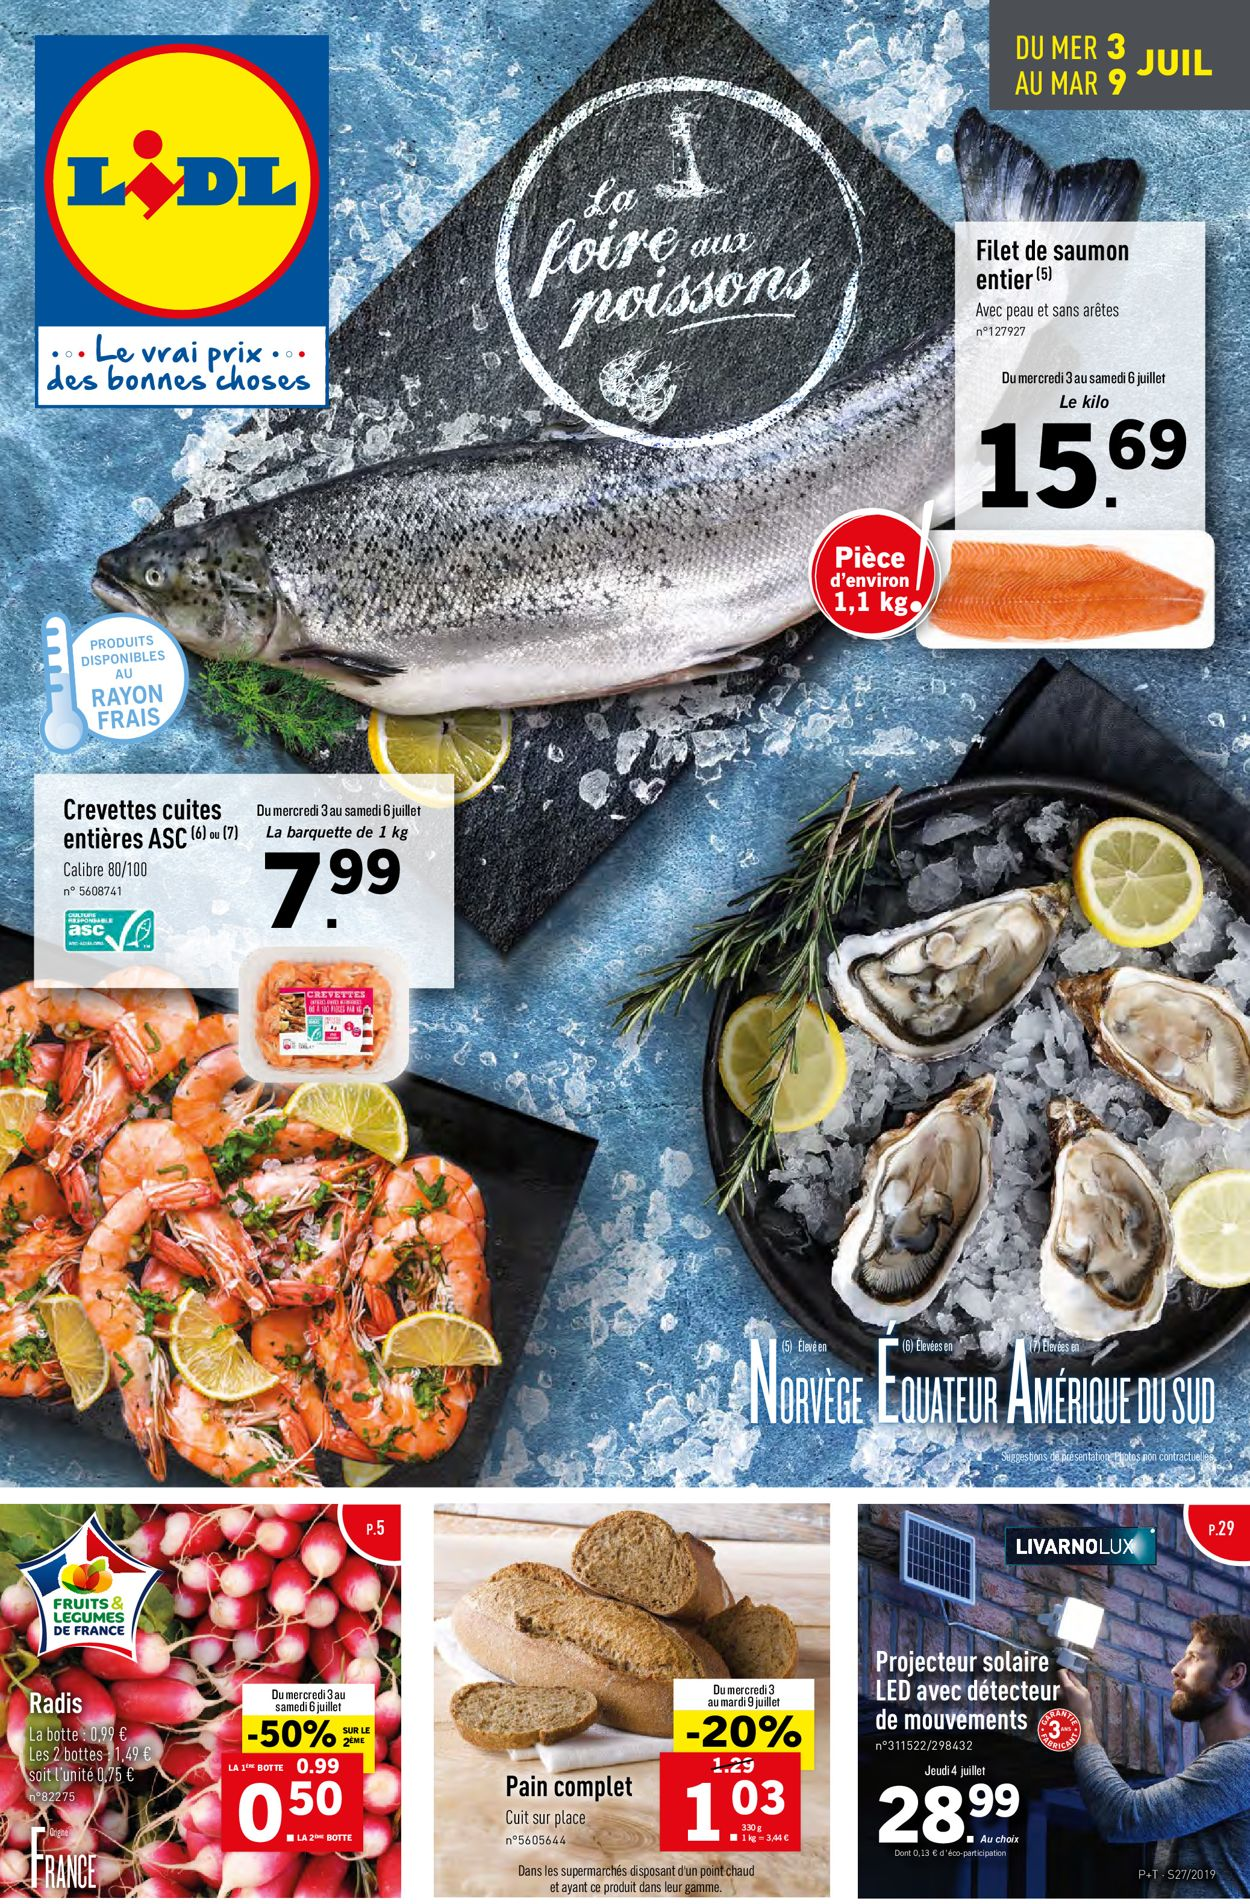 Lidl Catalogue - 03.07-09.07.2019